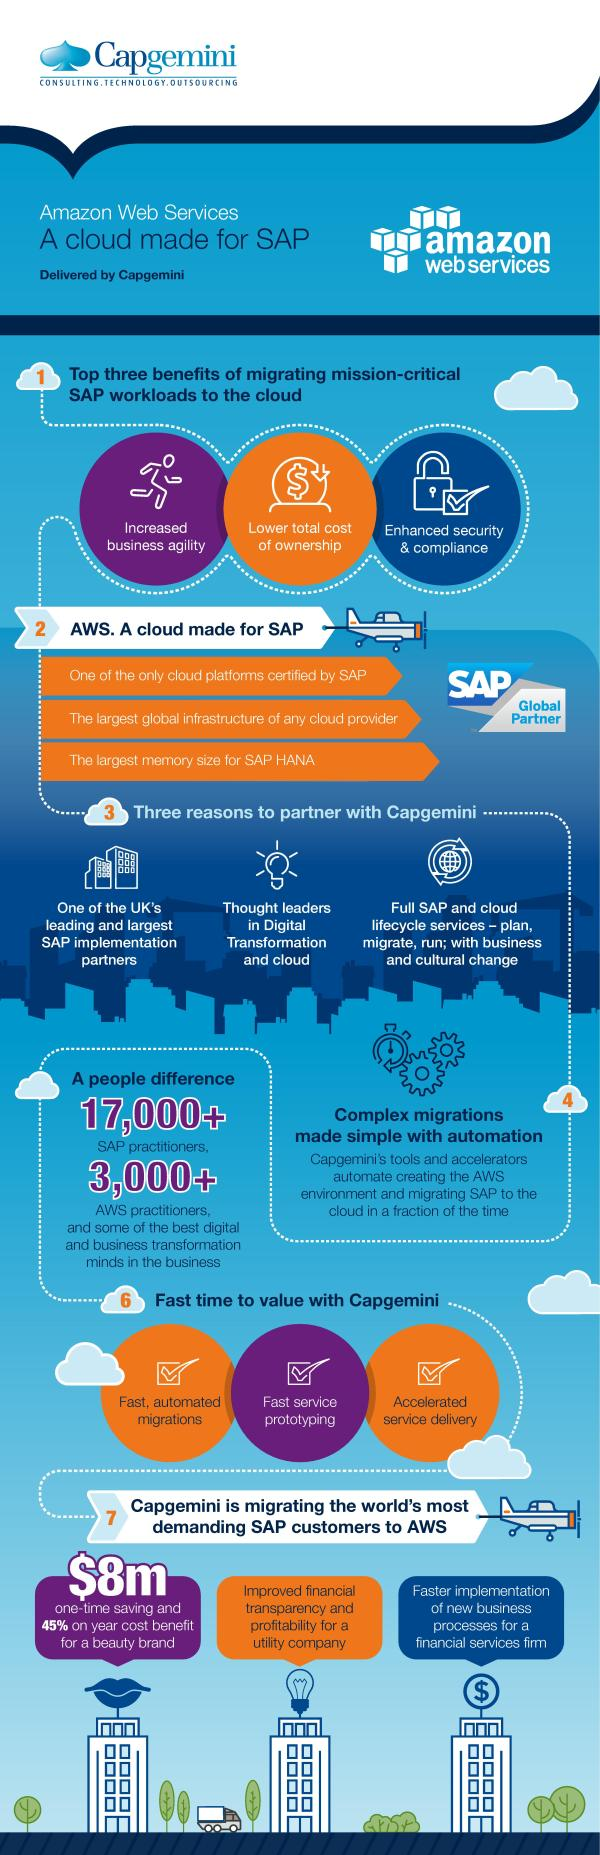 amazon web services and sap - HD3125×9665